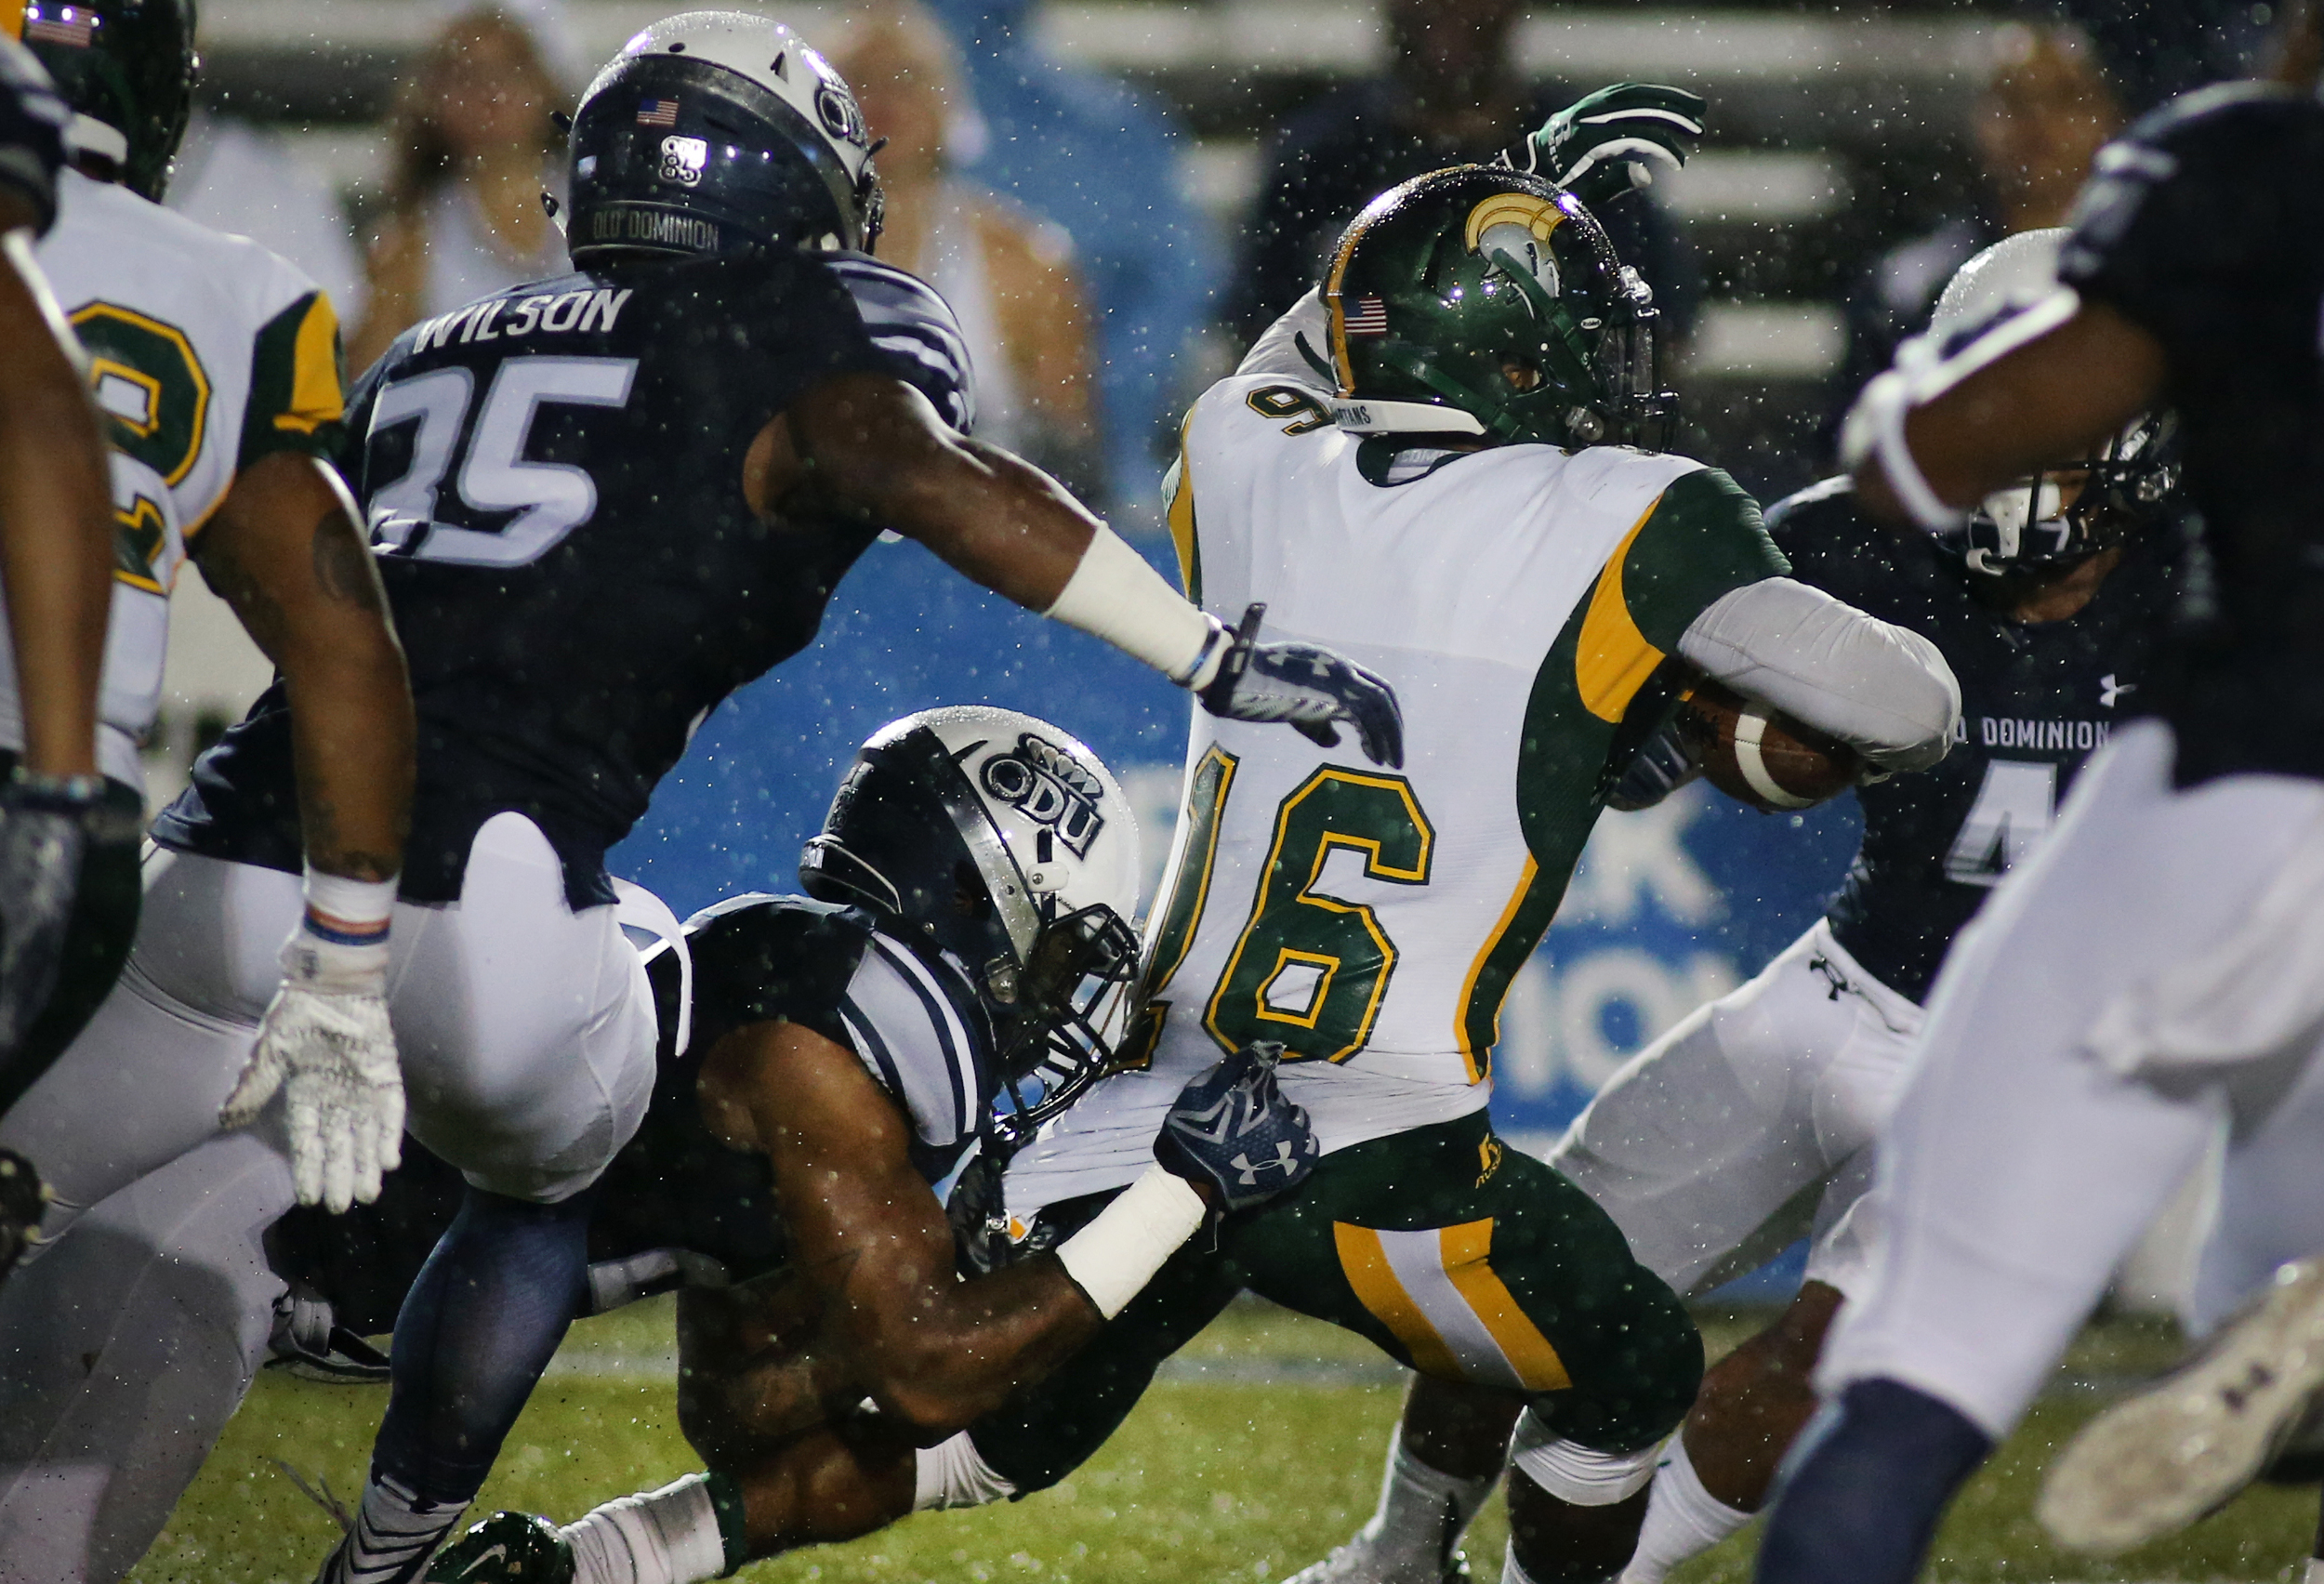 Old Dominion's Fellonte Misher, center below, brings down Norfolk State's Donté Haynesworth late in the third quarter, Saturday, Sept. 12, 2015 at Foreman Field in Norfolk.